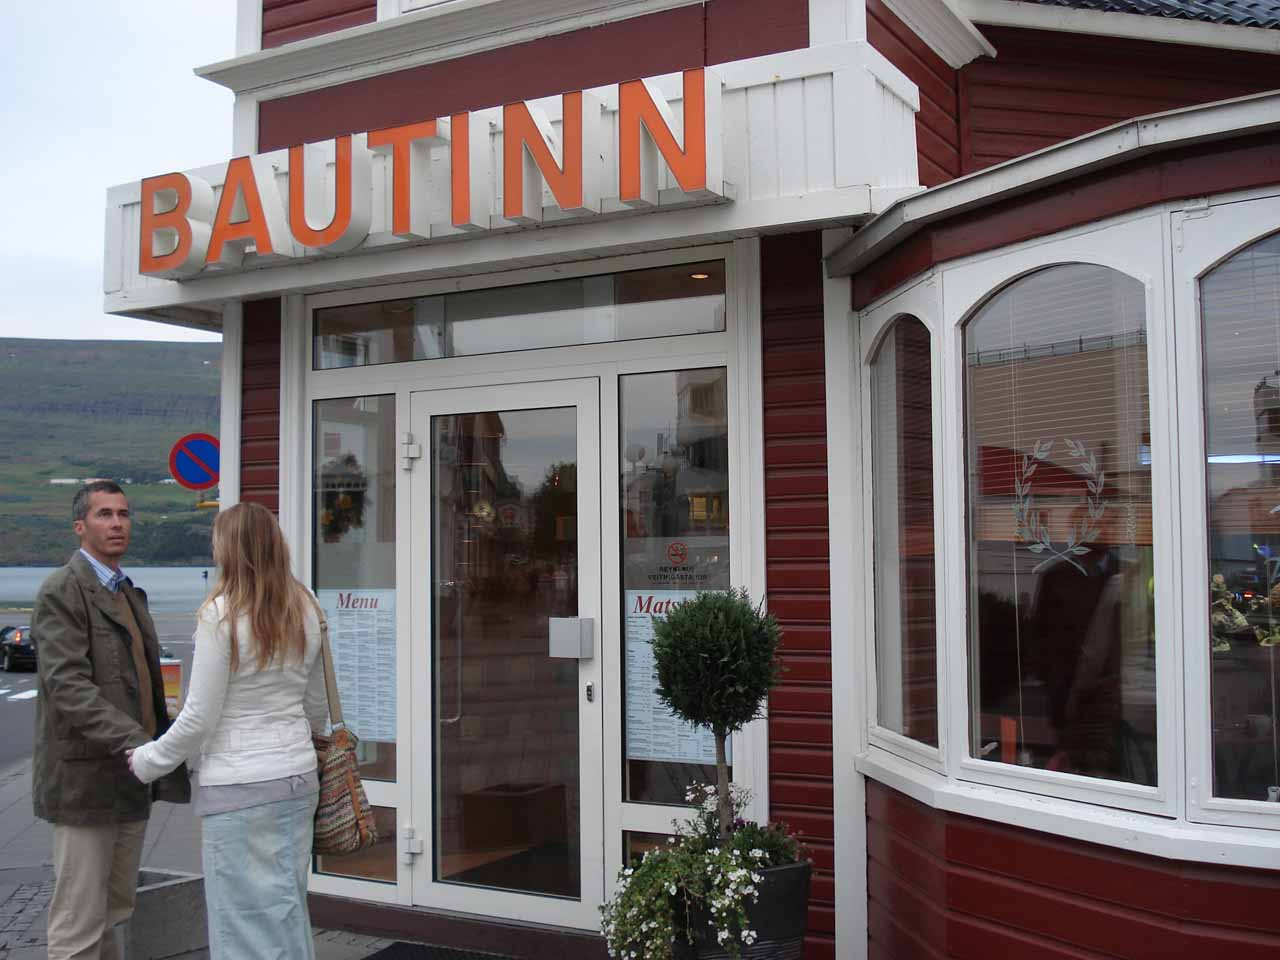 The Bautinn Restaurant